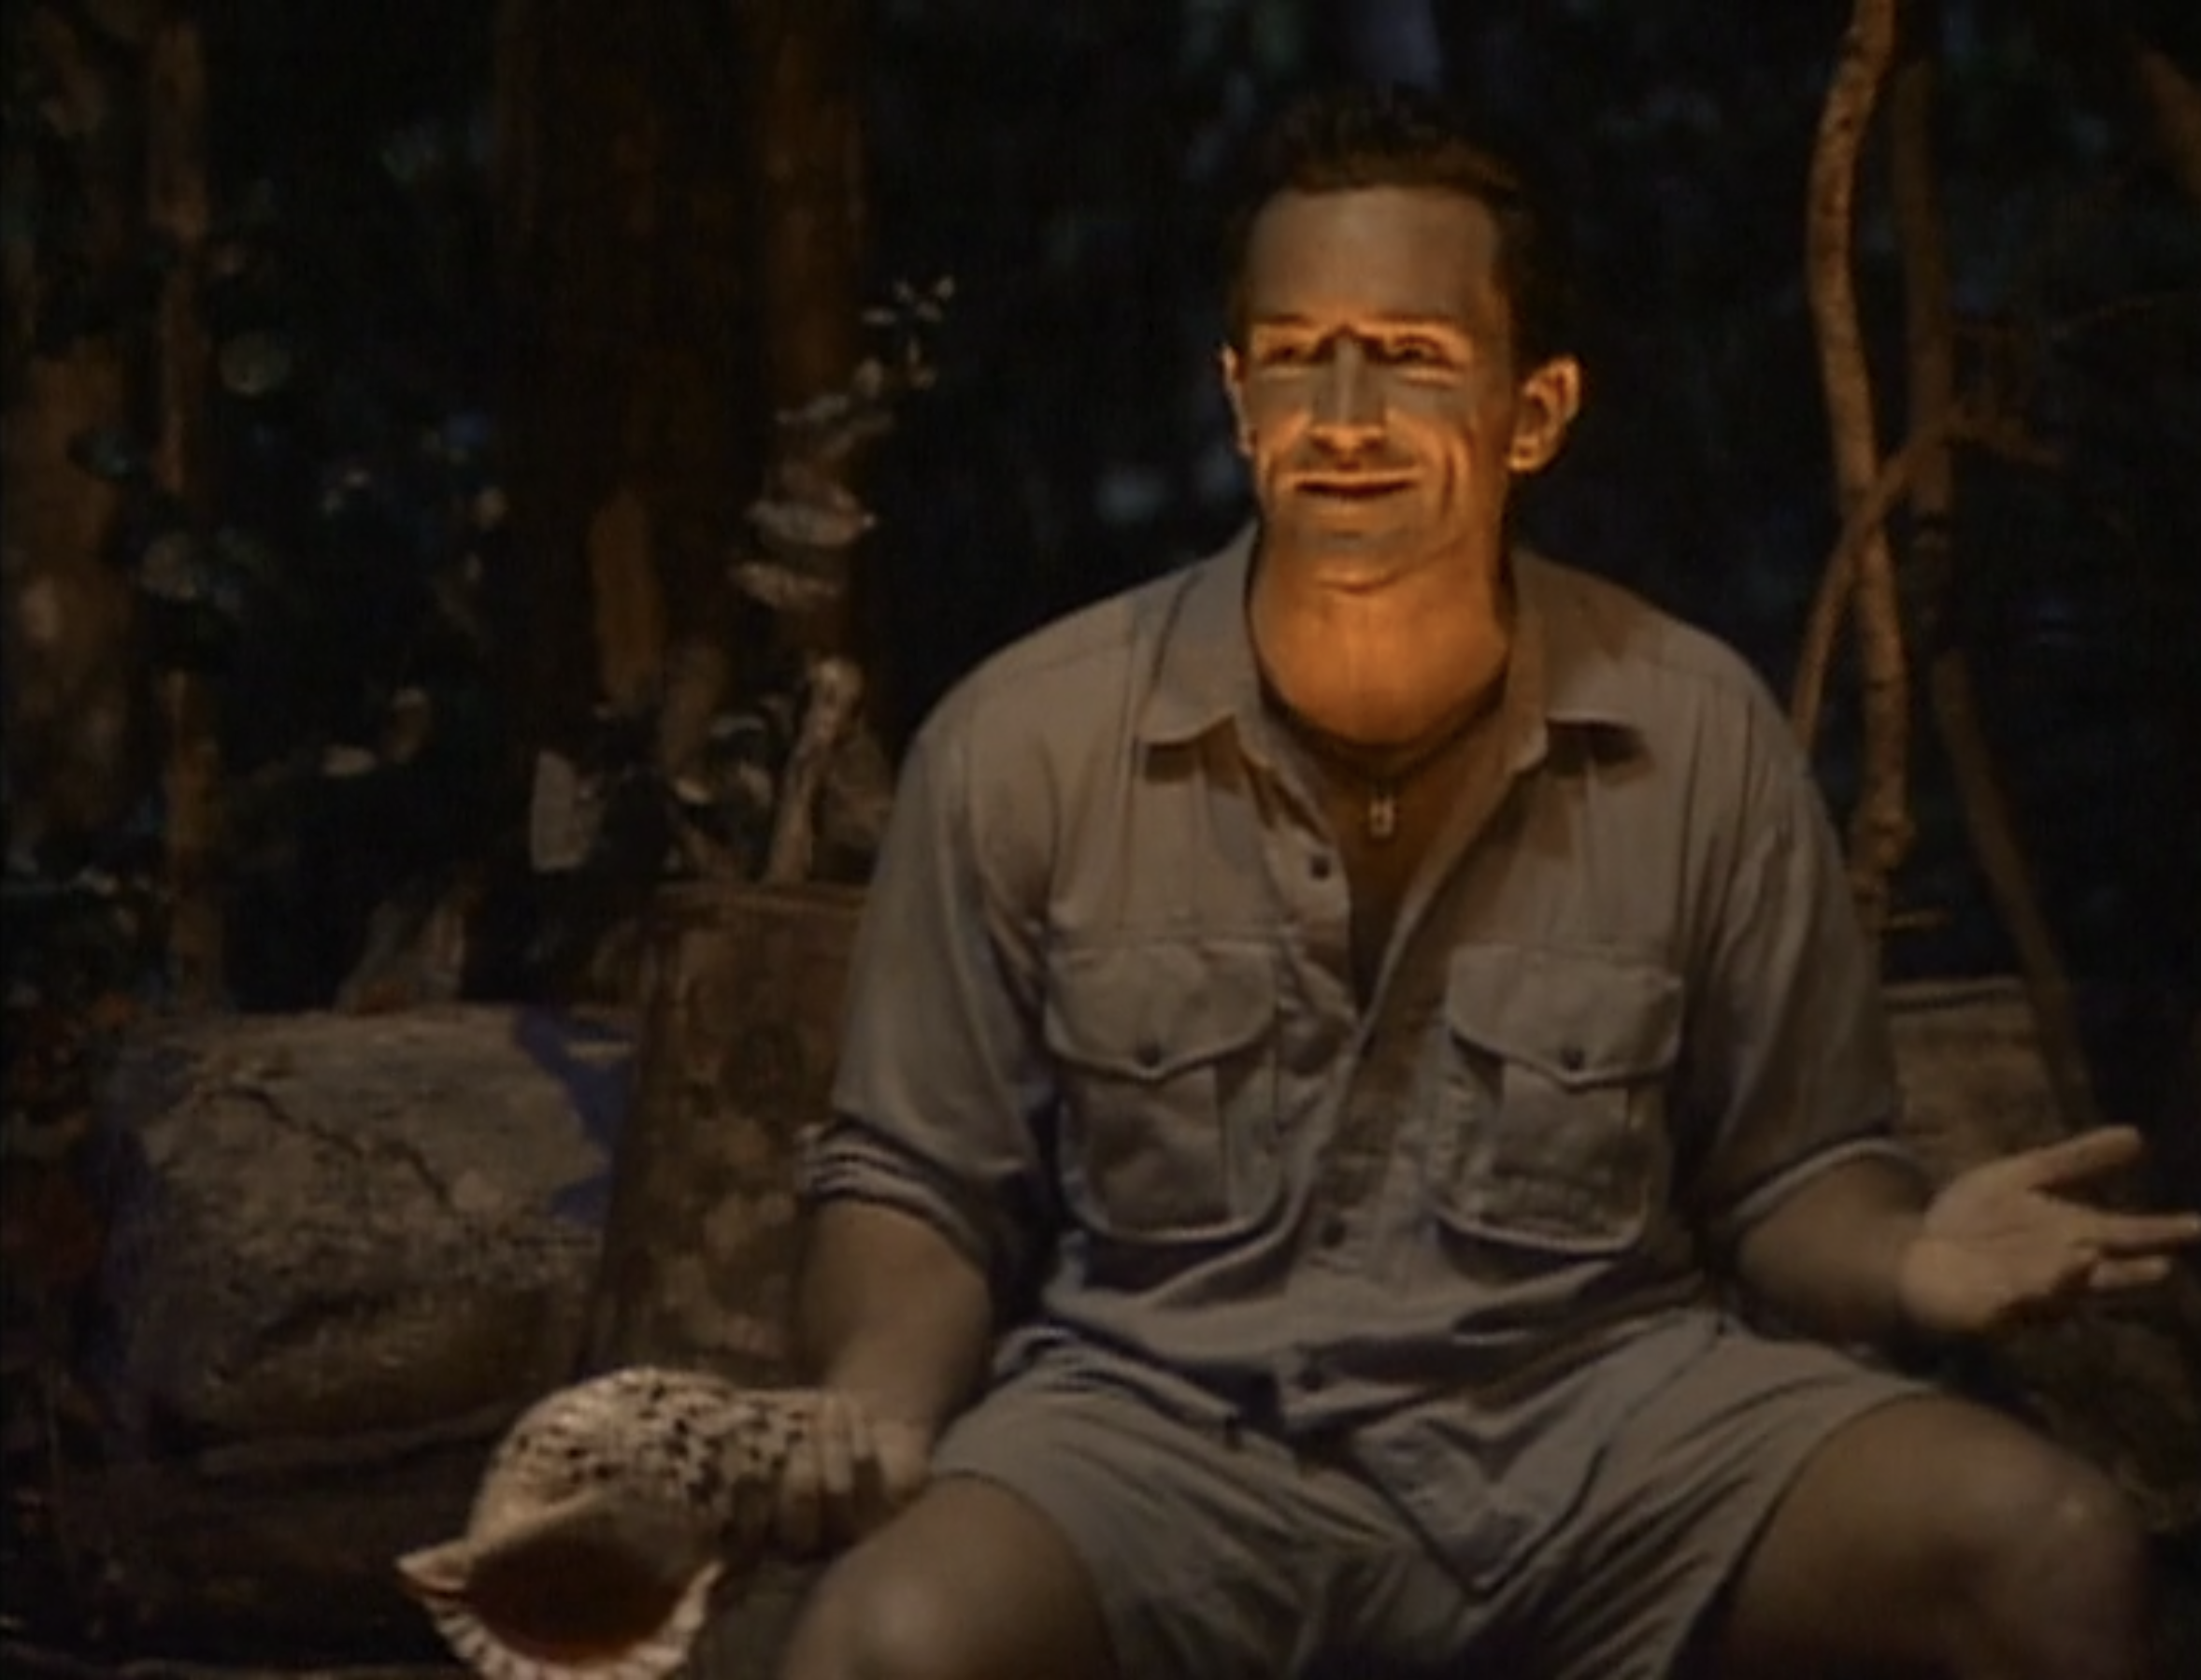 Jeff Probst holding a conch shell at Tribal Council